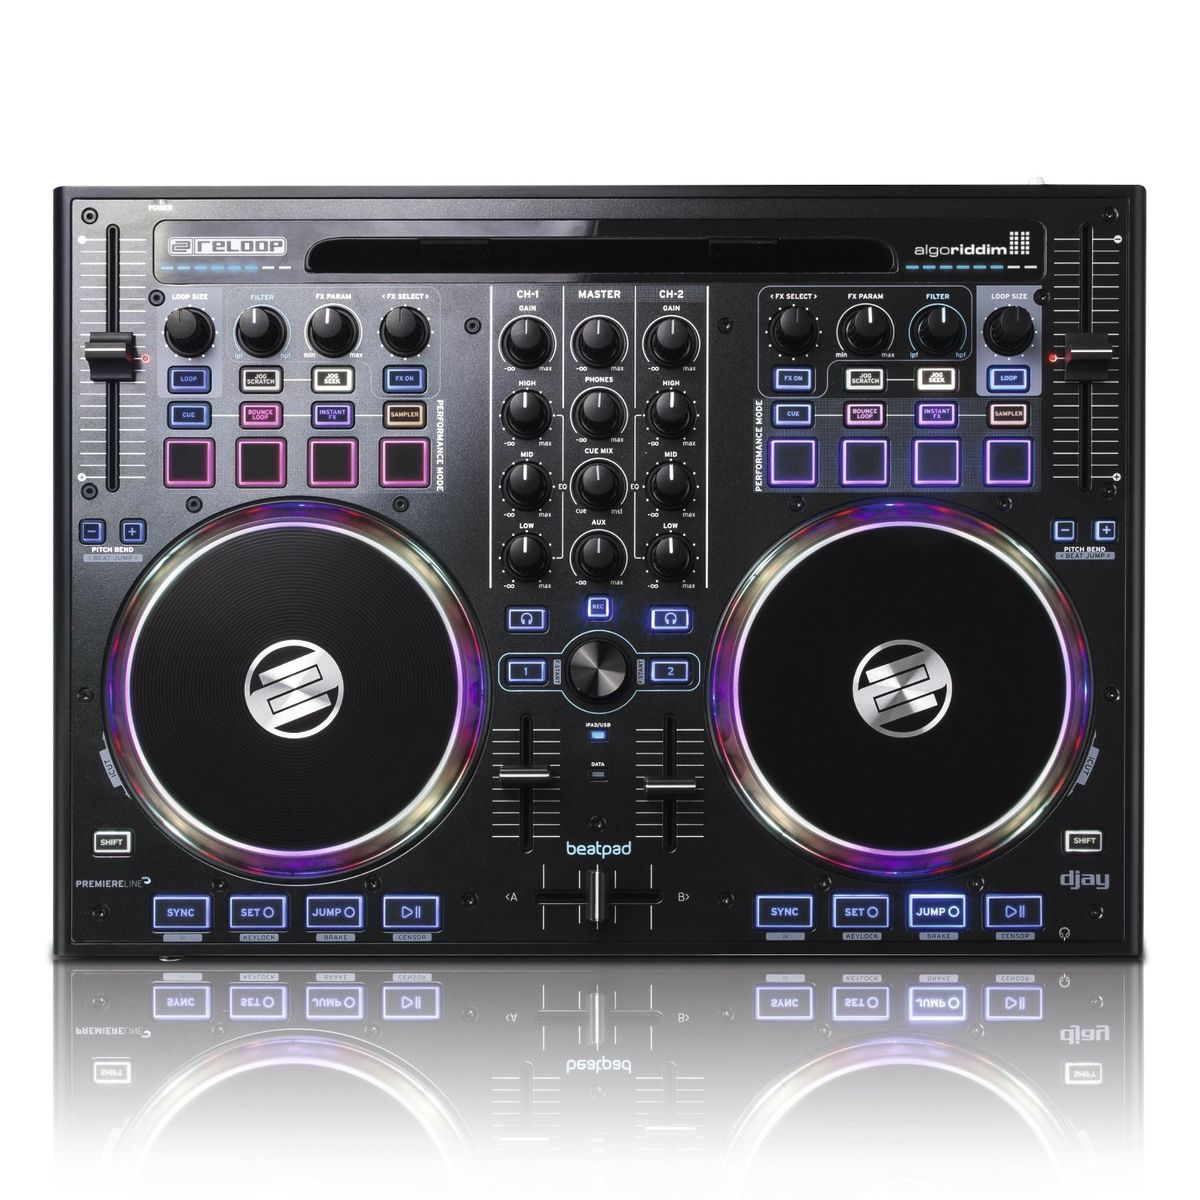 Headline for Top 20 Best Professional DJ Controllers Reviews 2017-2018